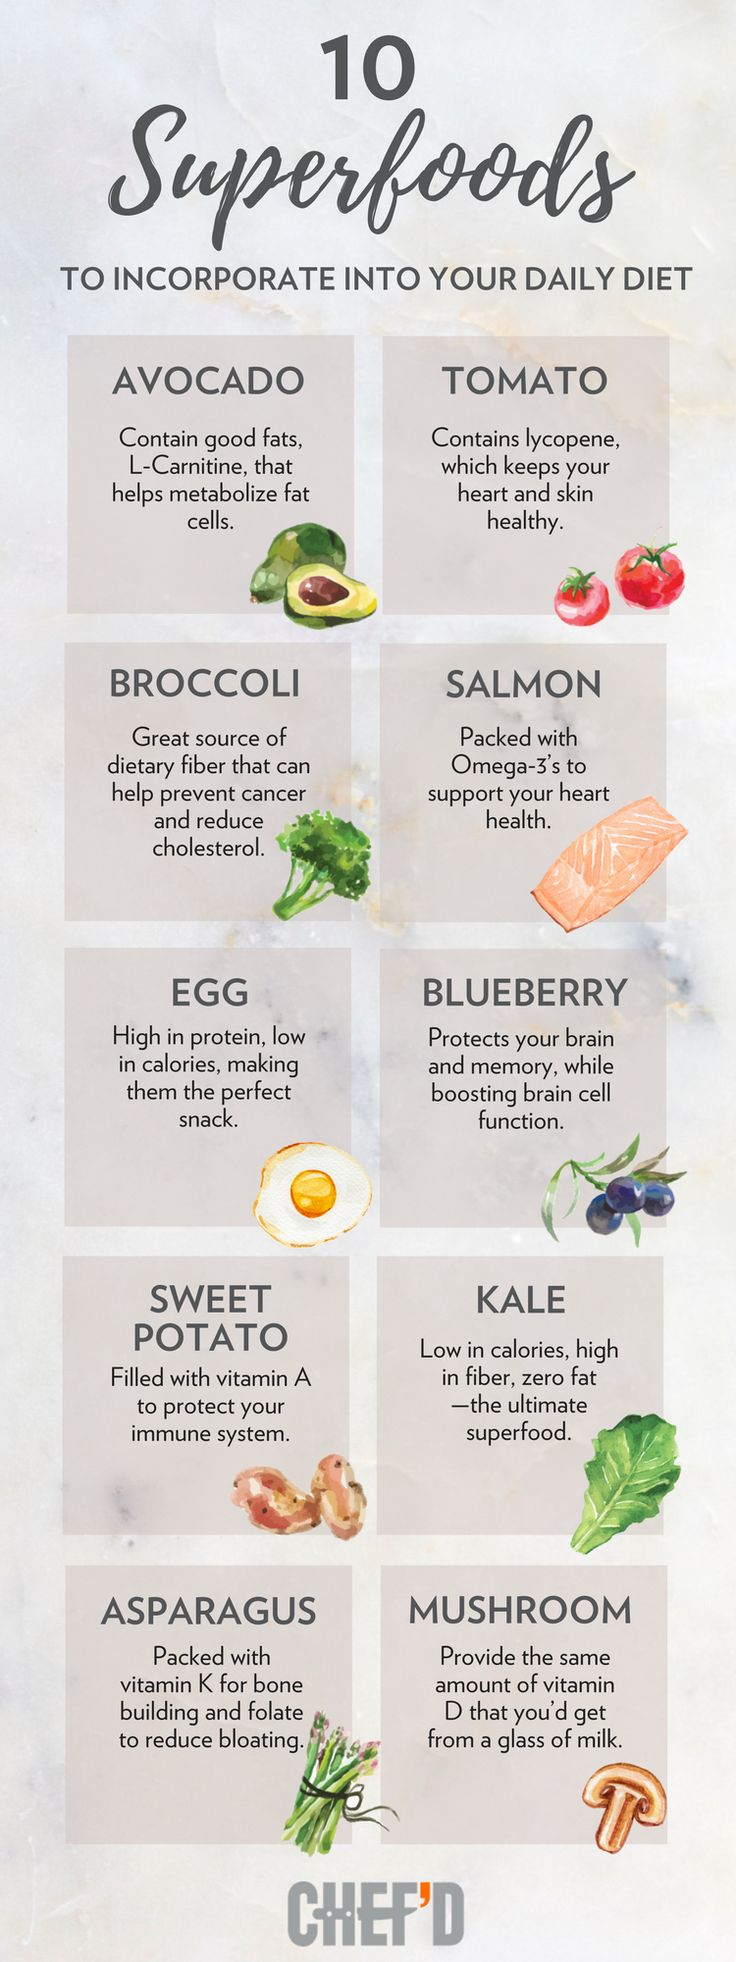 Daily diet for good health - 10 Superfoods To Incorporate Into Your Daily Diet